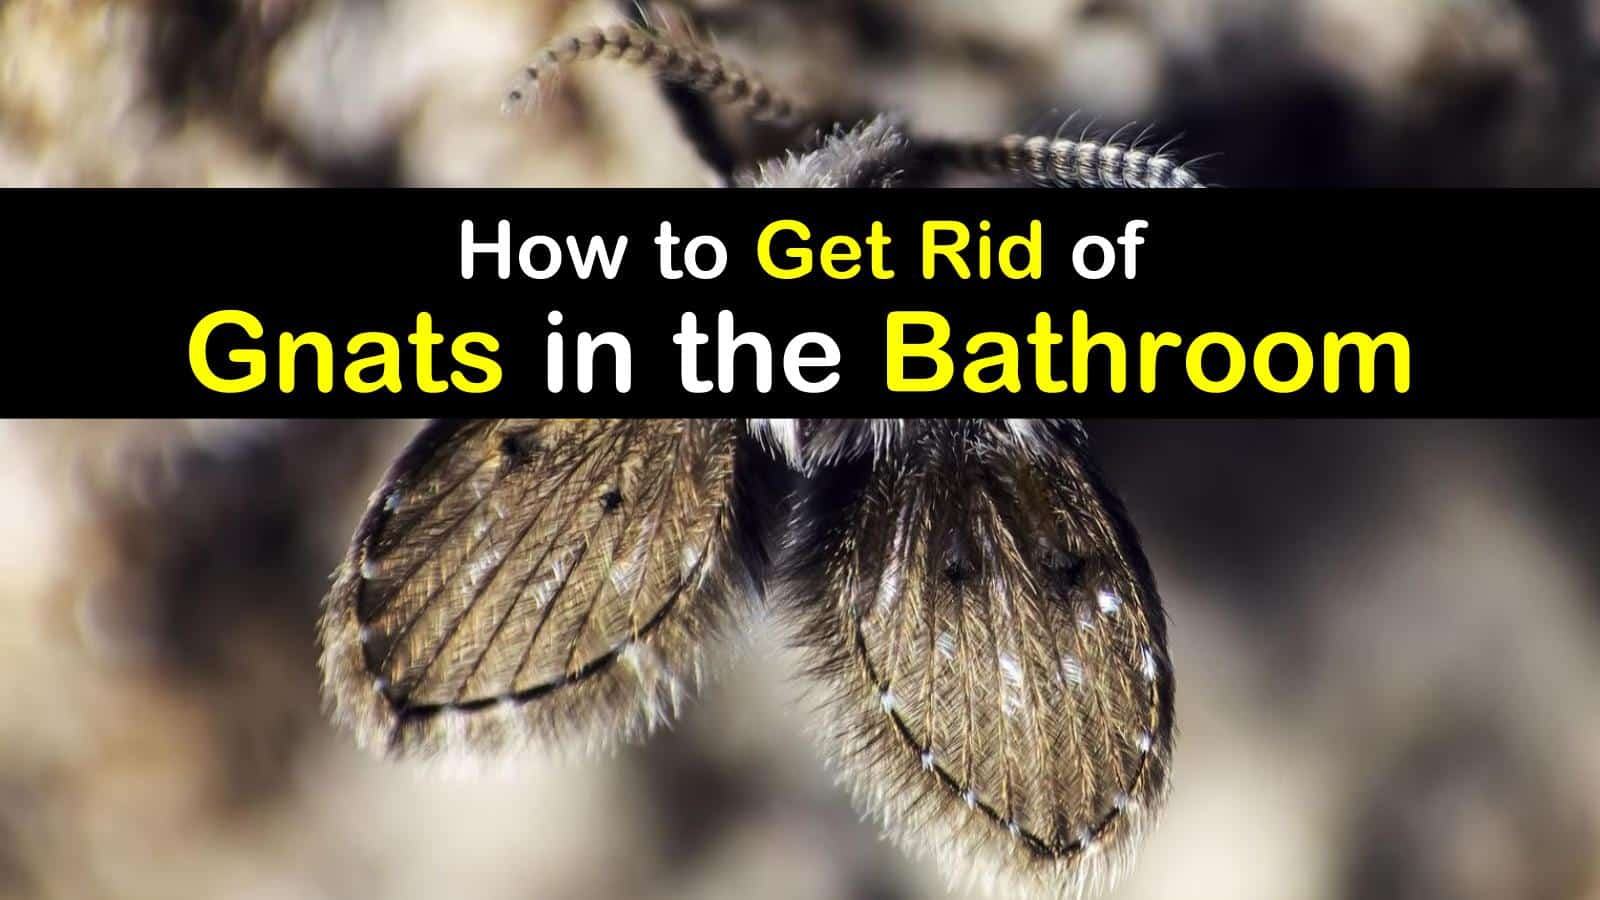 Bathroom Gnats Infestation How To Get Rid Of Gnats In The